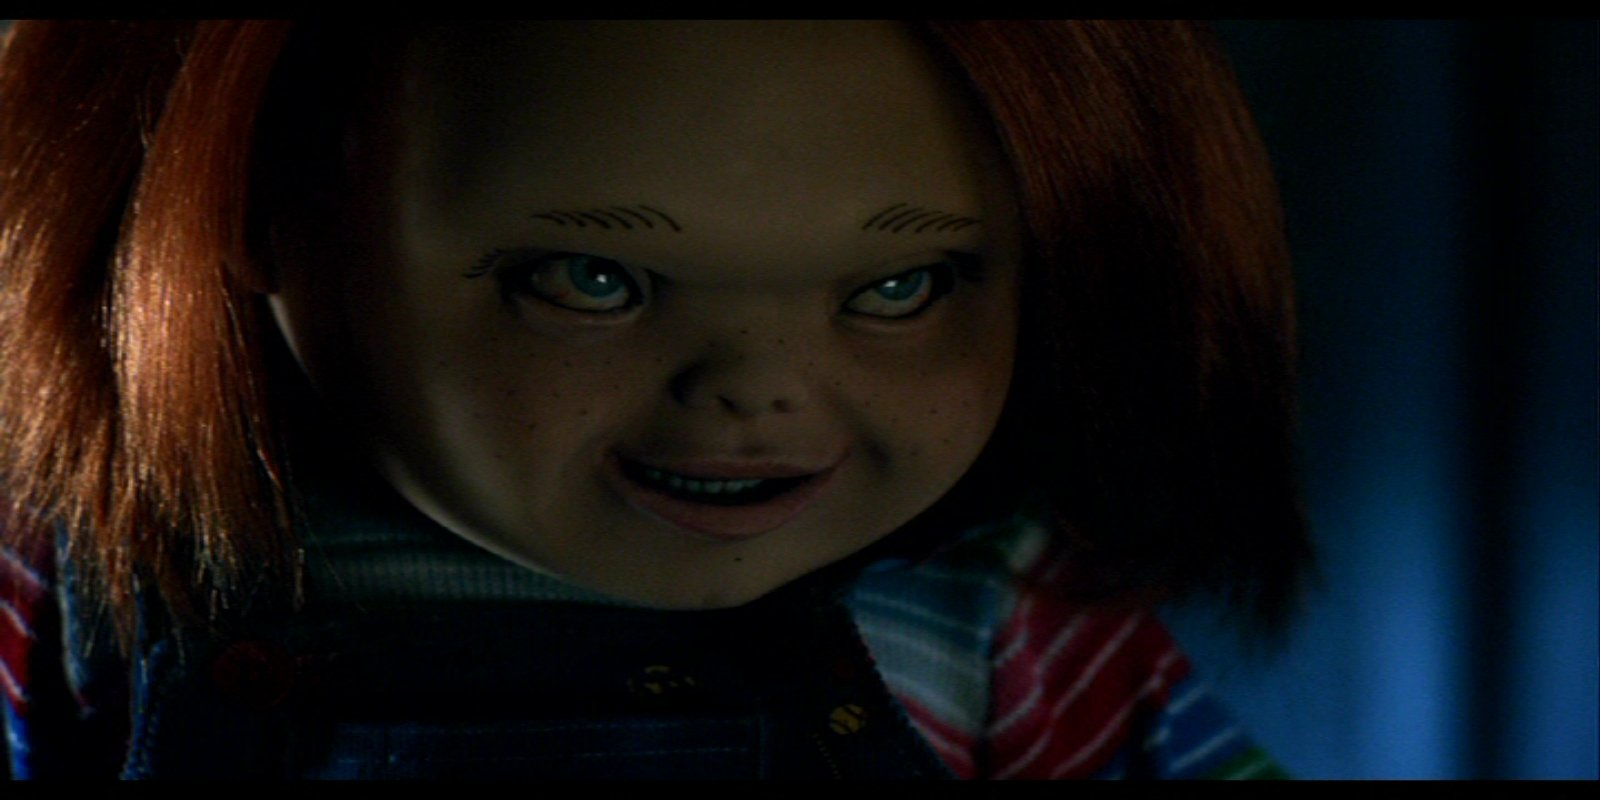 Horror Hd Wallpapers 1366x768 Curse Of Chucky Wallpaper And Background Image 1600x800